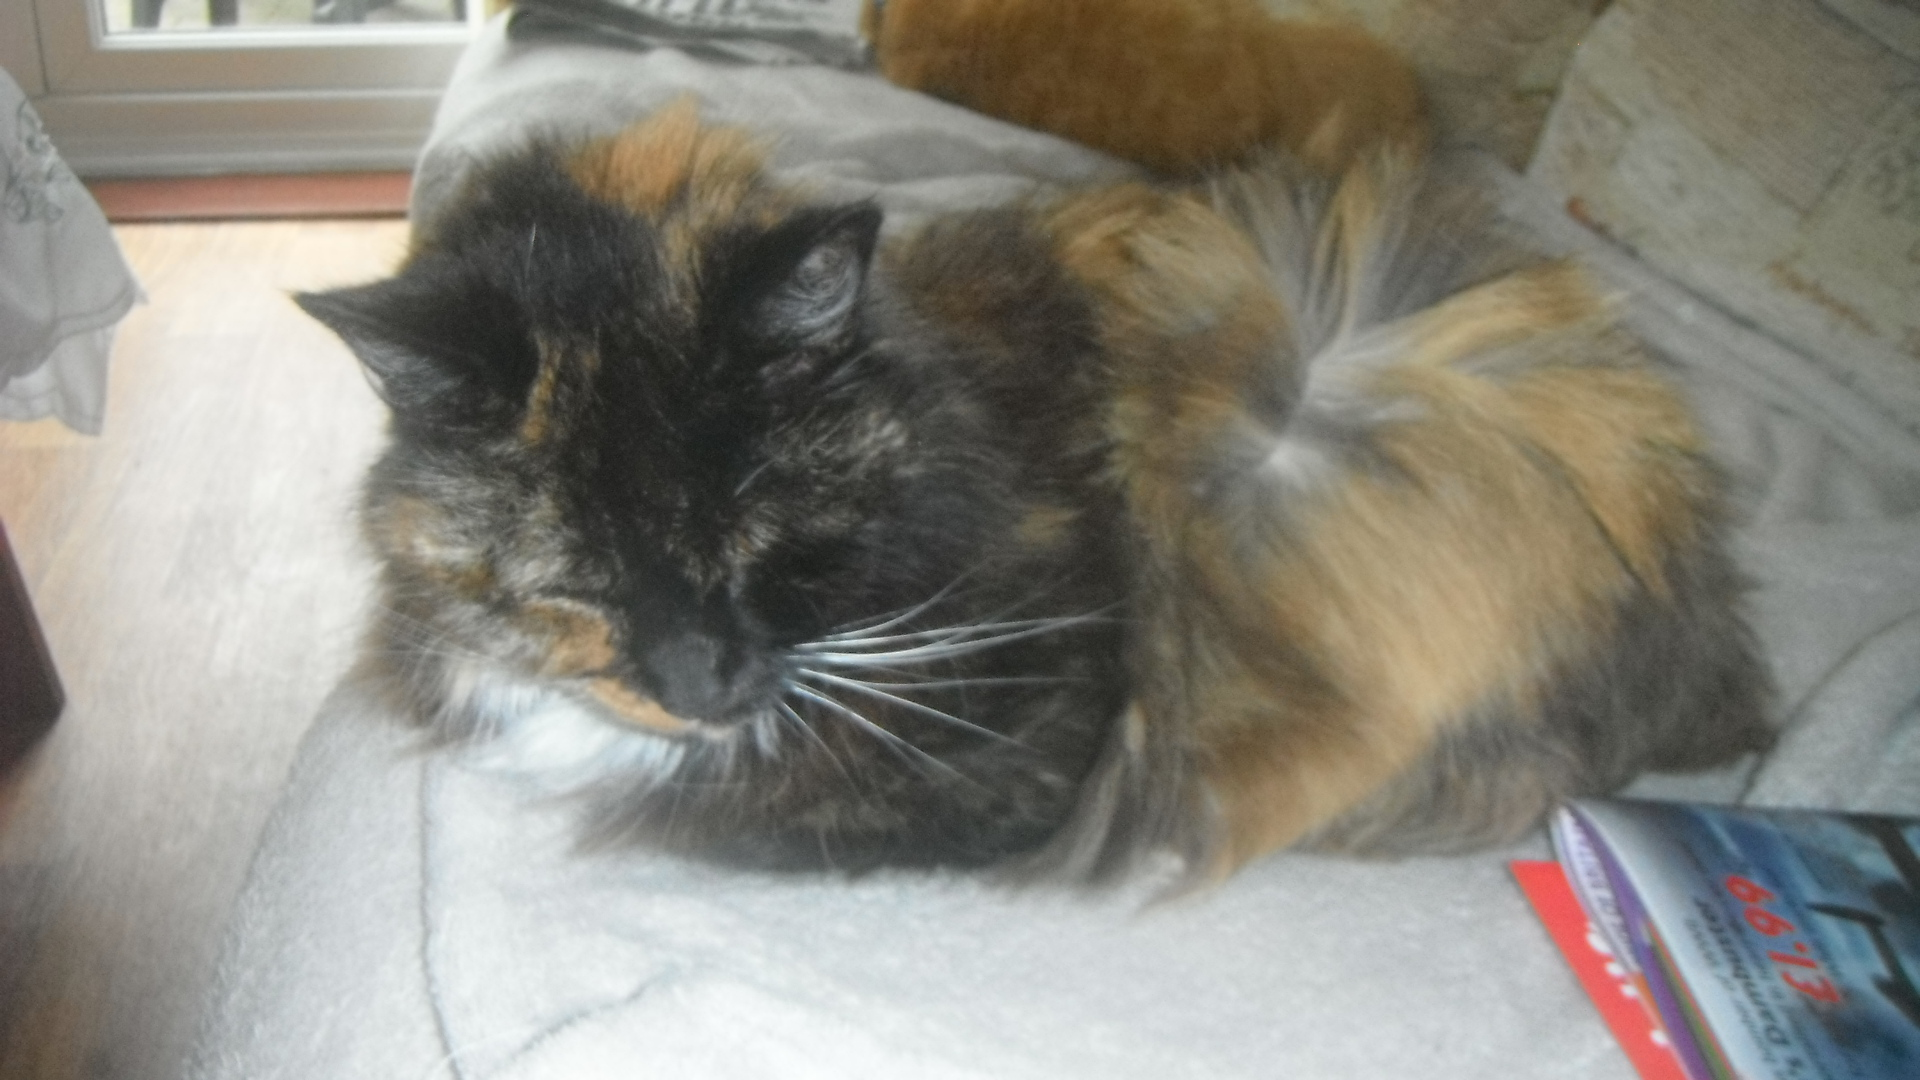 Photo taken by me – My Cat Smudge